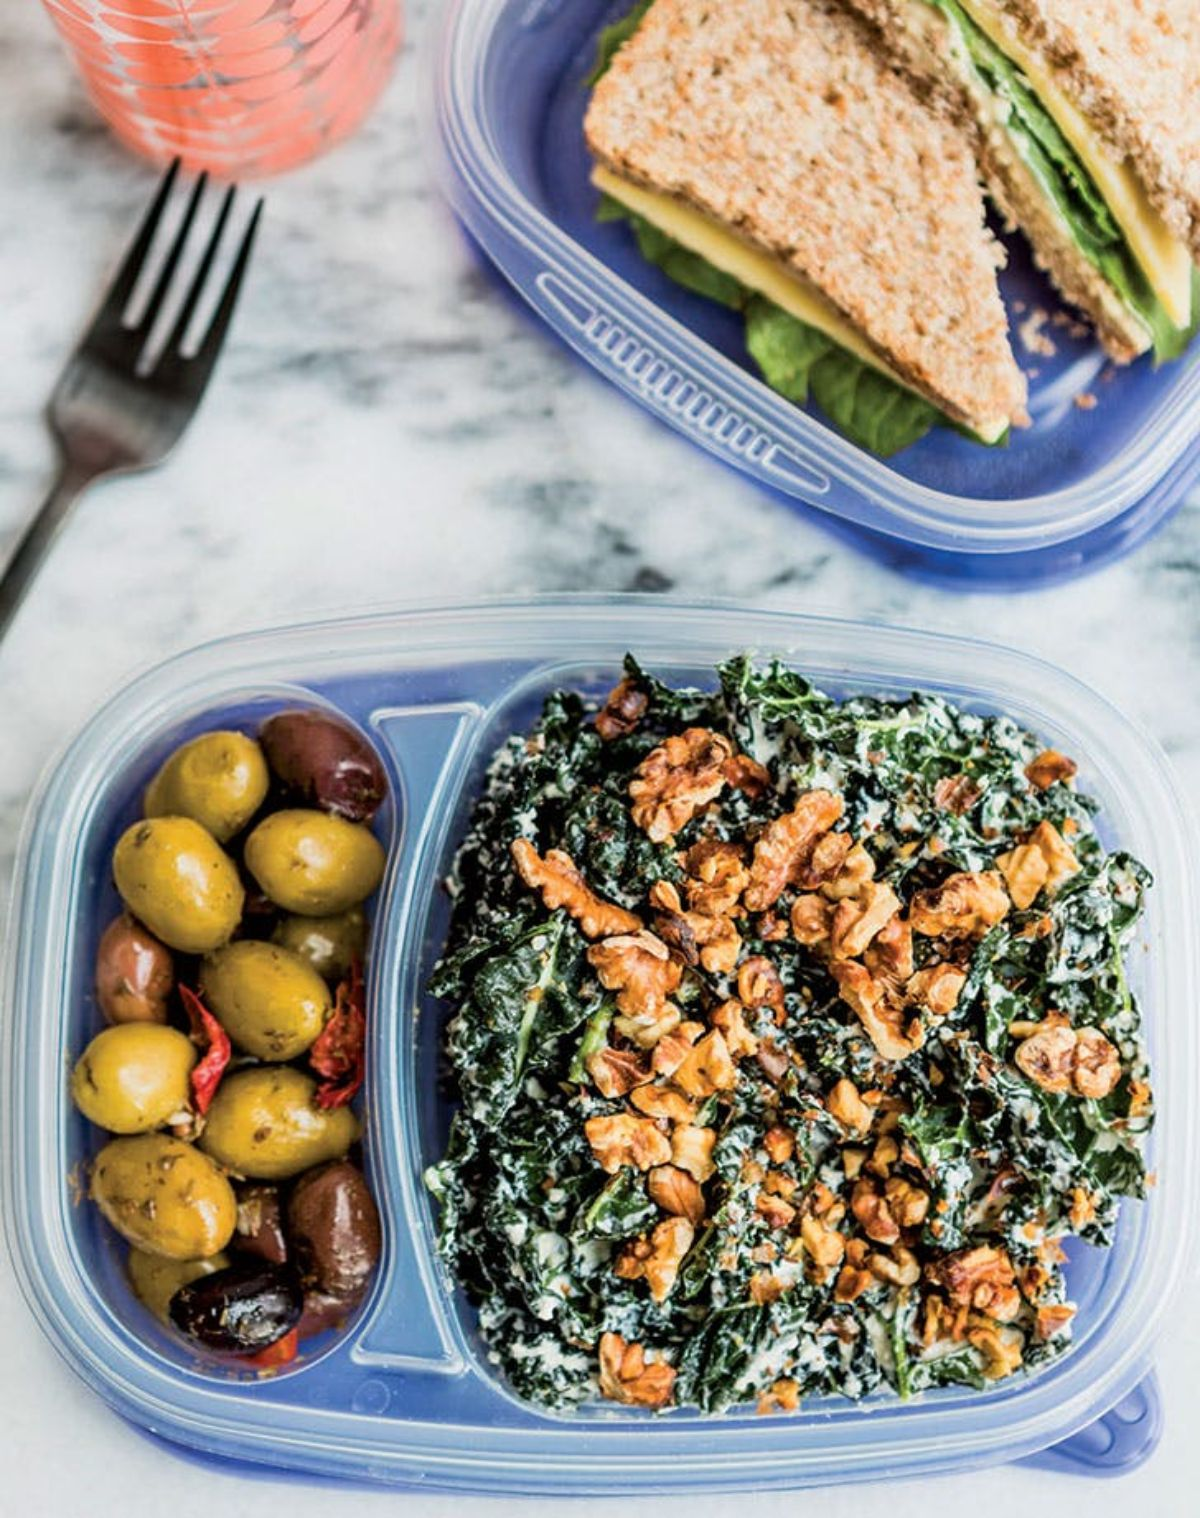 On a white marble countertop are two open blue plastic lunchboxes. Kale salad with walnuts is in the section on the right and mixed olives on the left. The second box behind it is partialy in shot and holds a cheese and lettuce sandwich